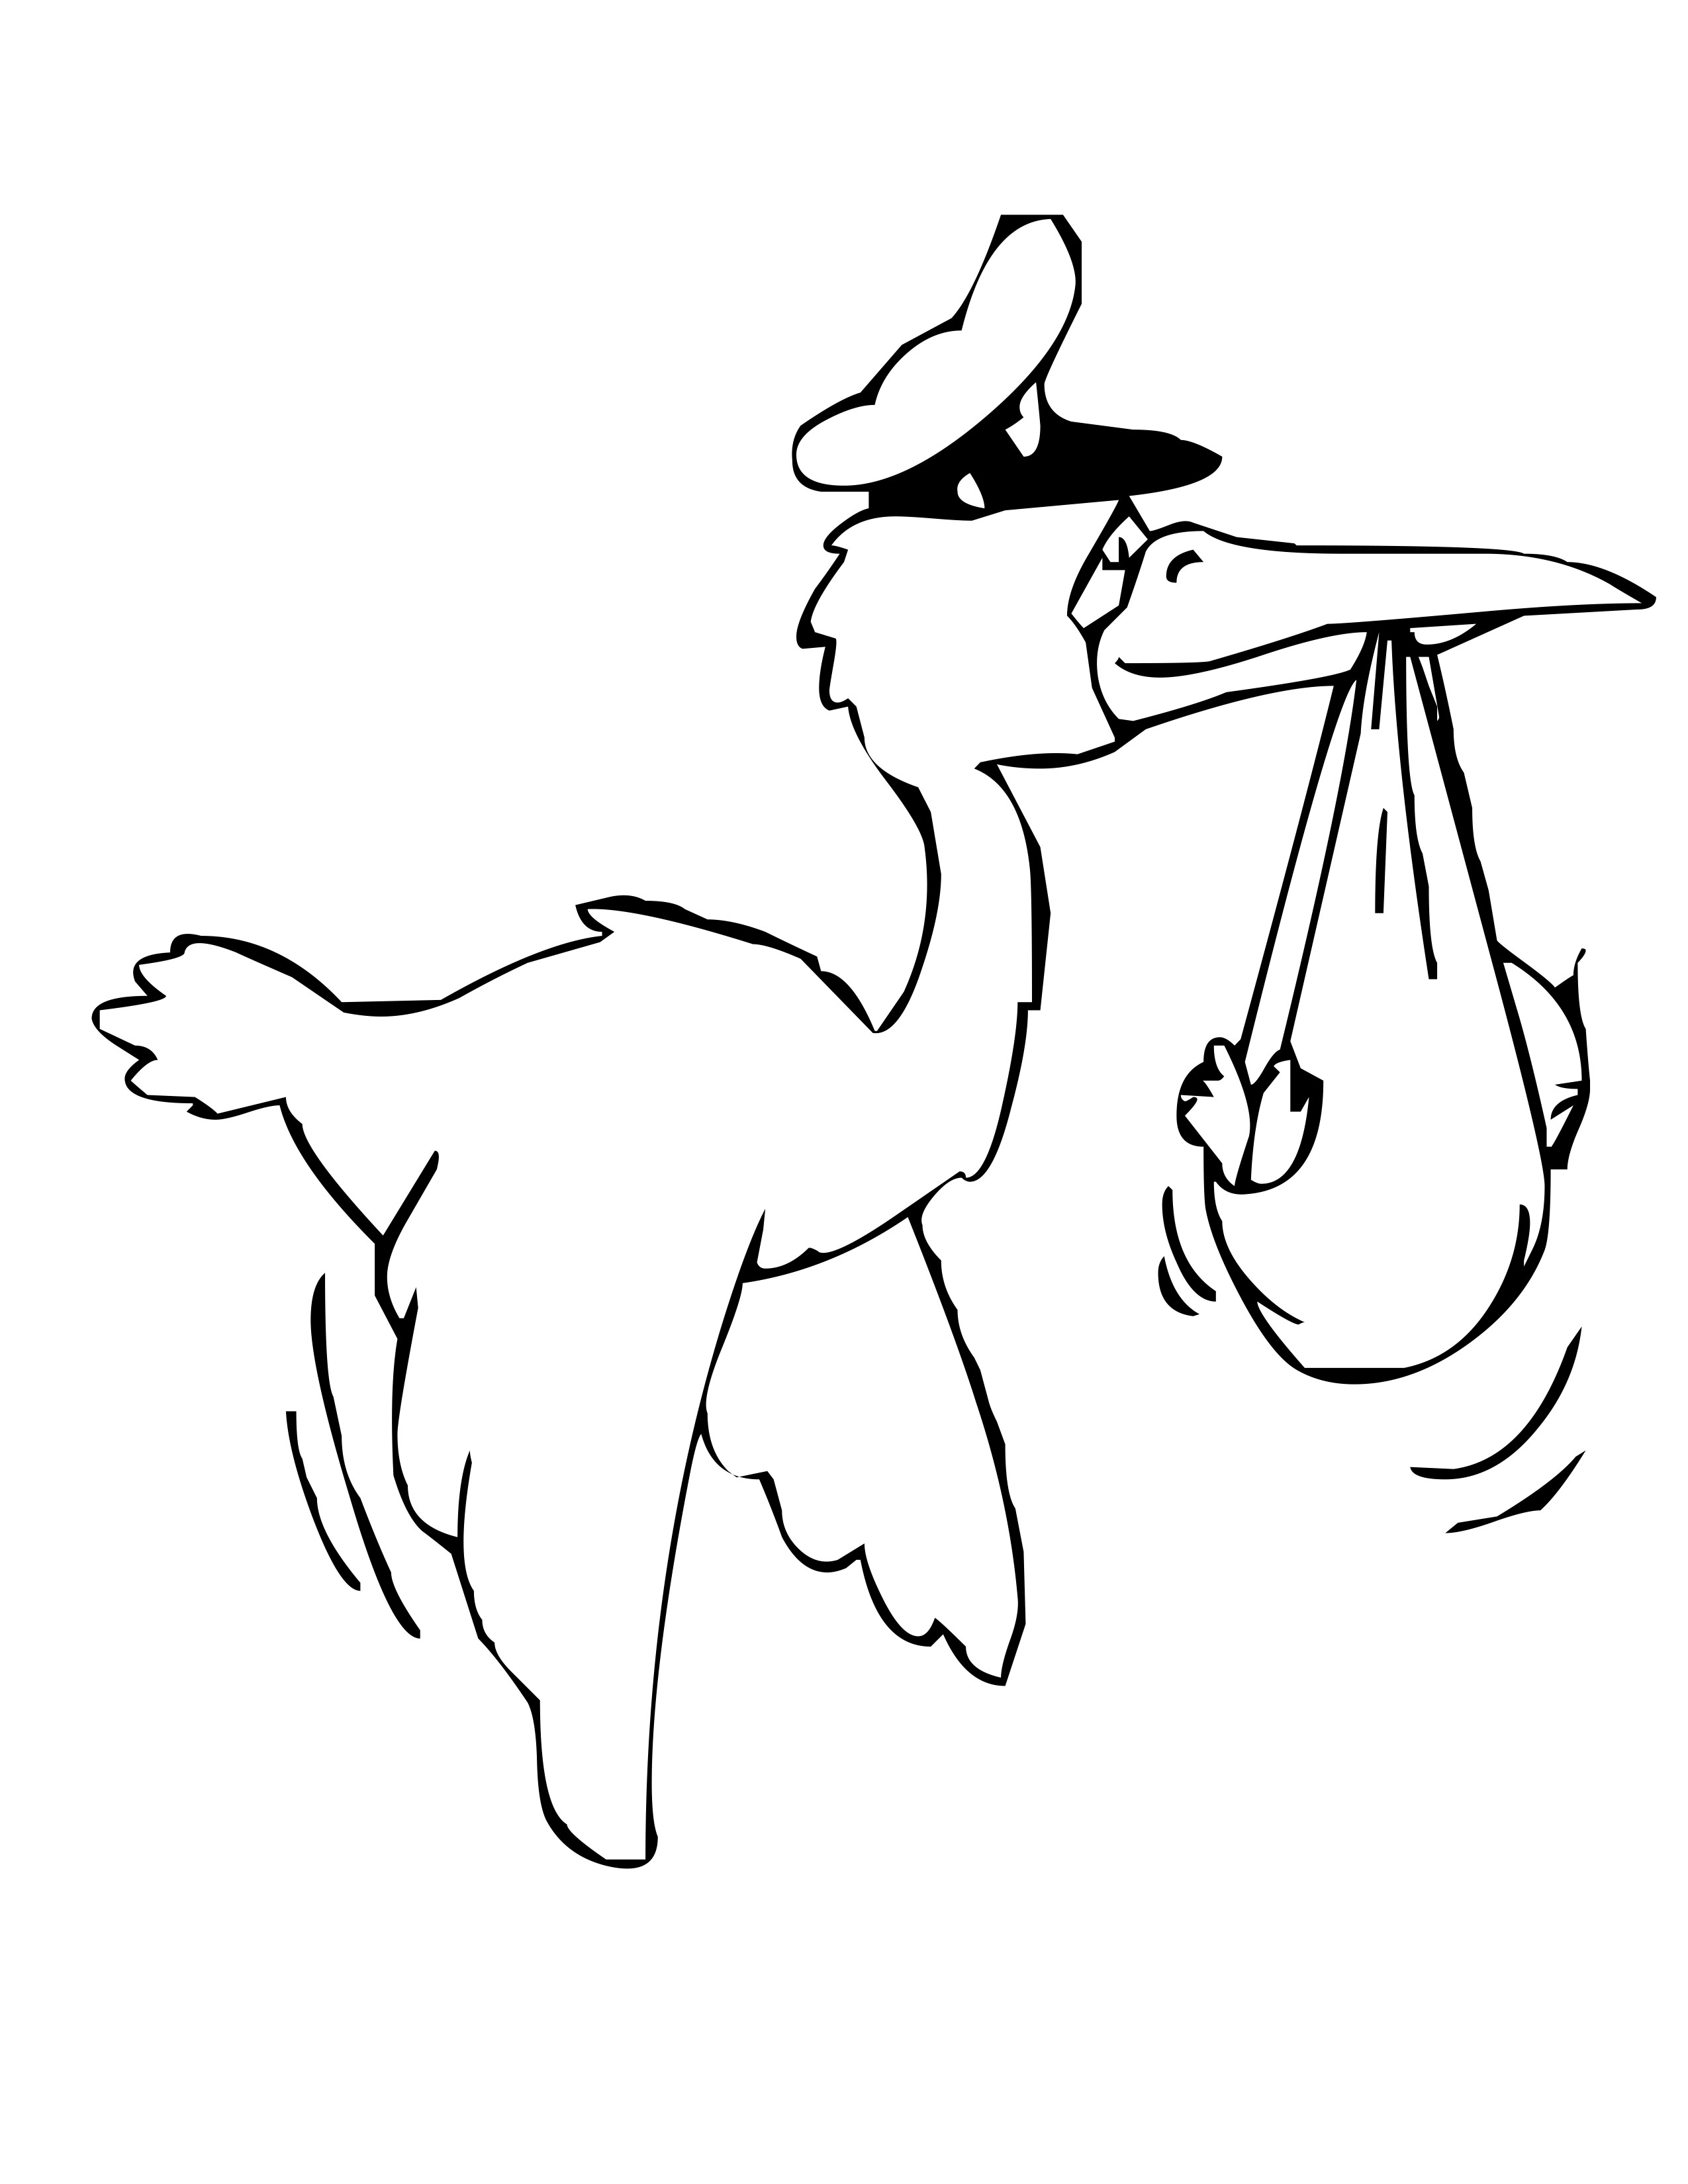 stork and baby coloring pages - photo#8